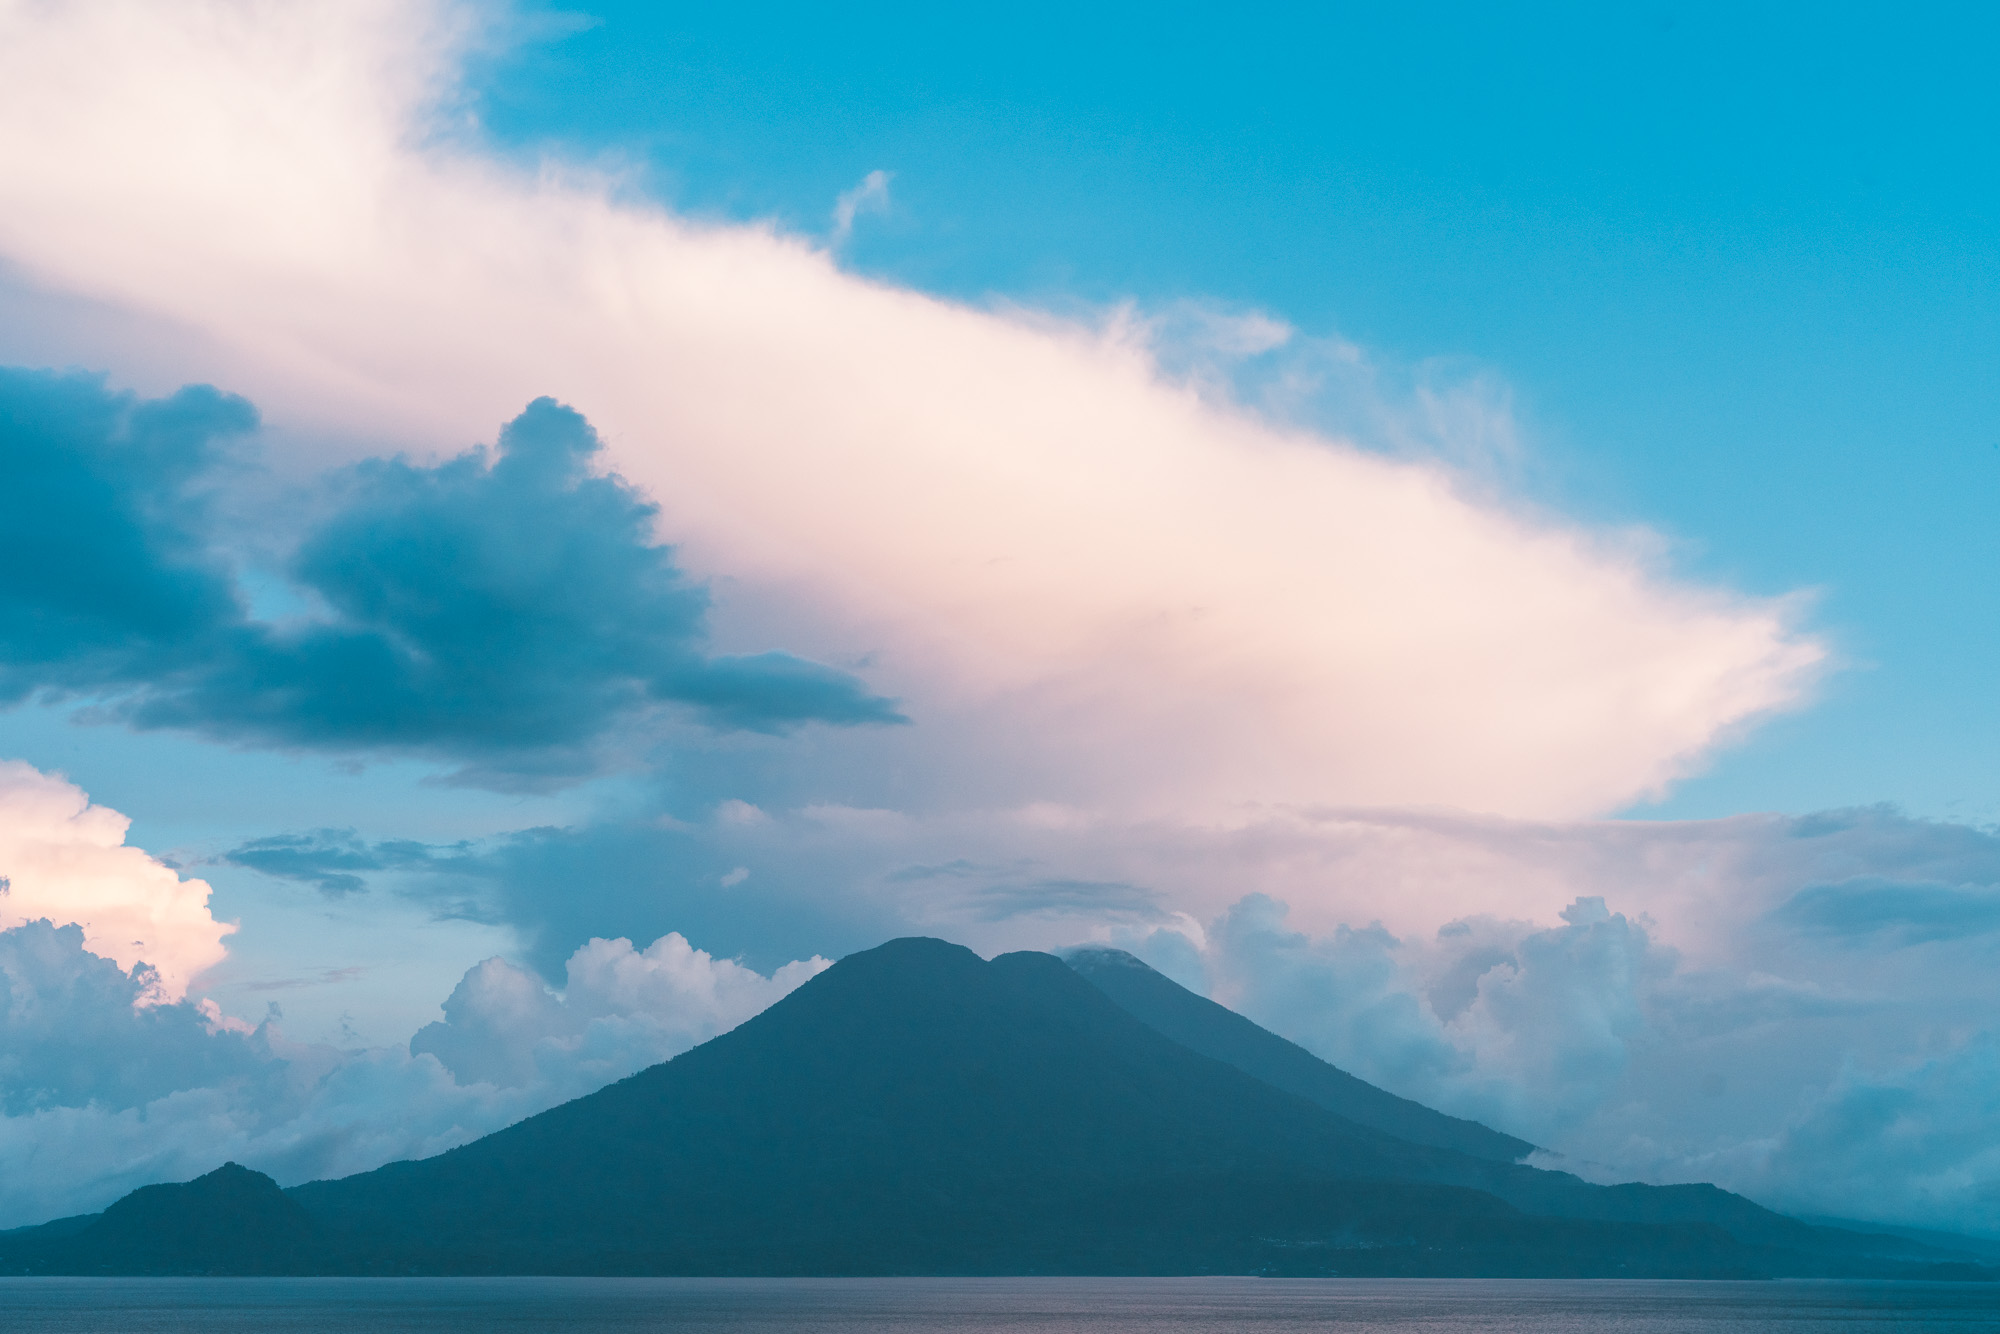 volcanos with big clouds at lake atitlan